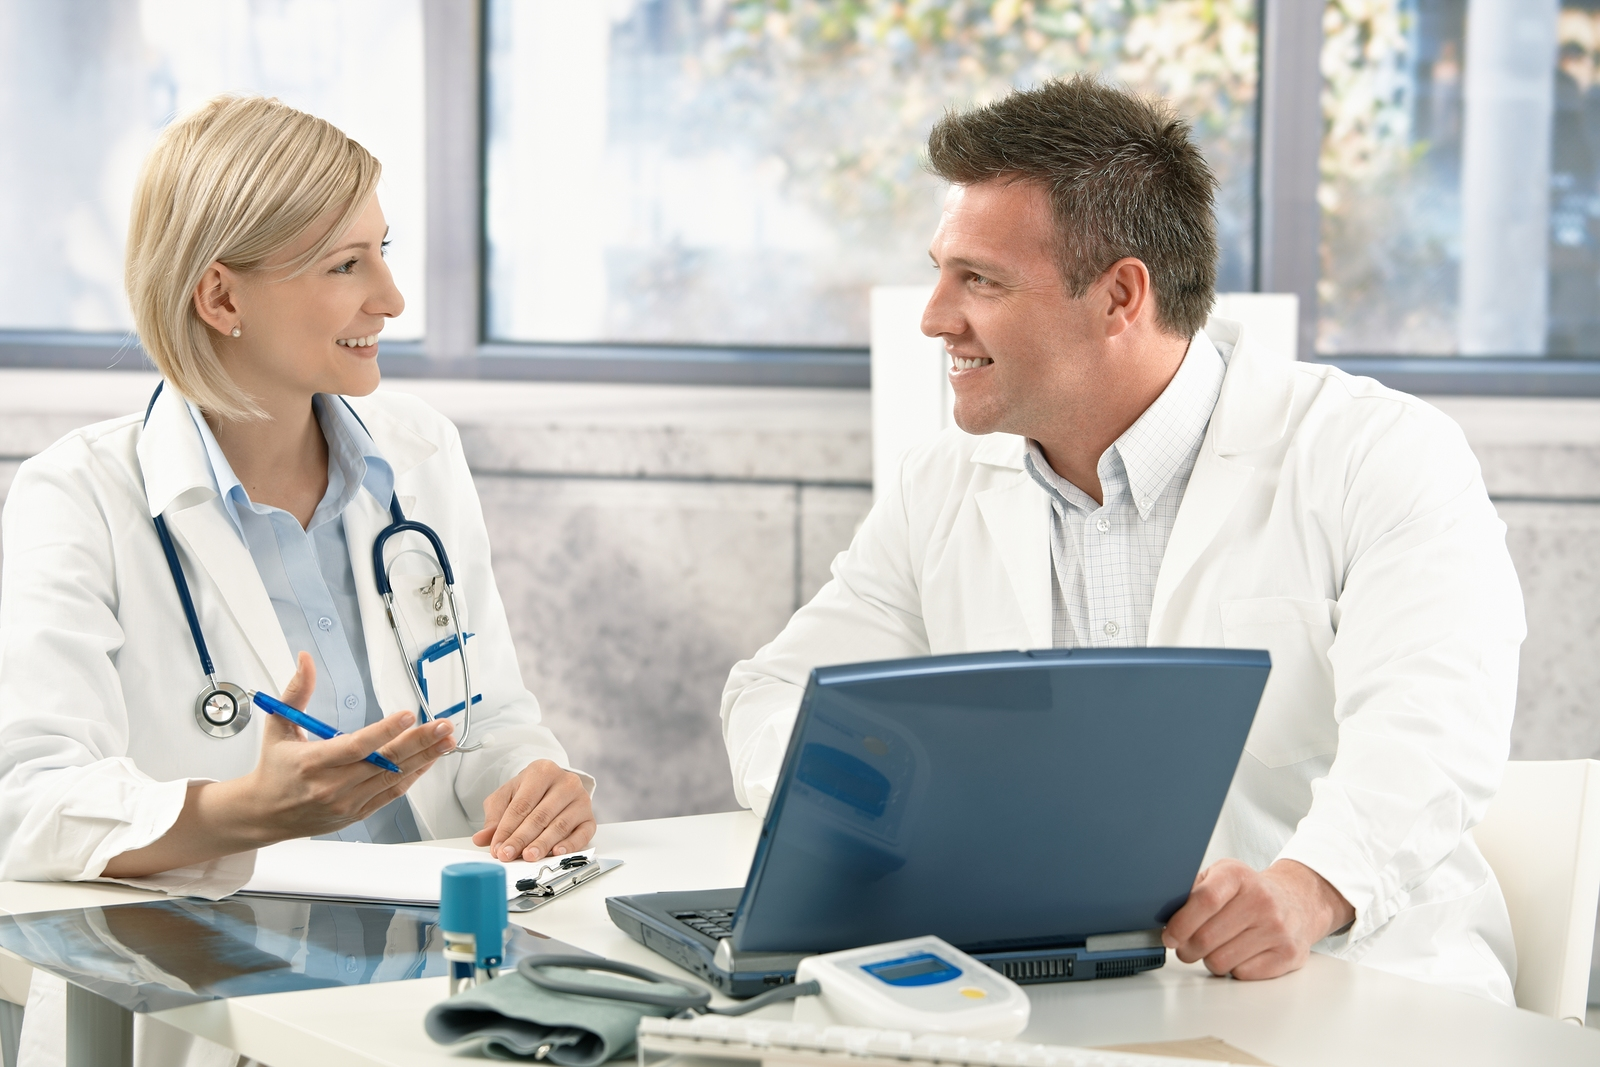 bigstock-Two-medical-doctors-consulting-18161861